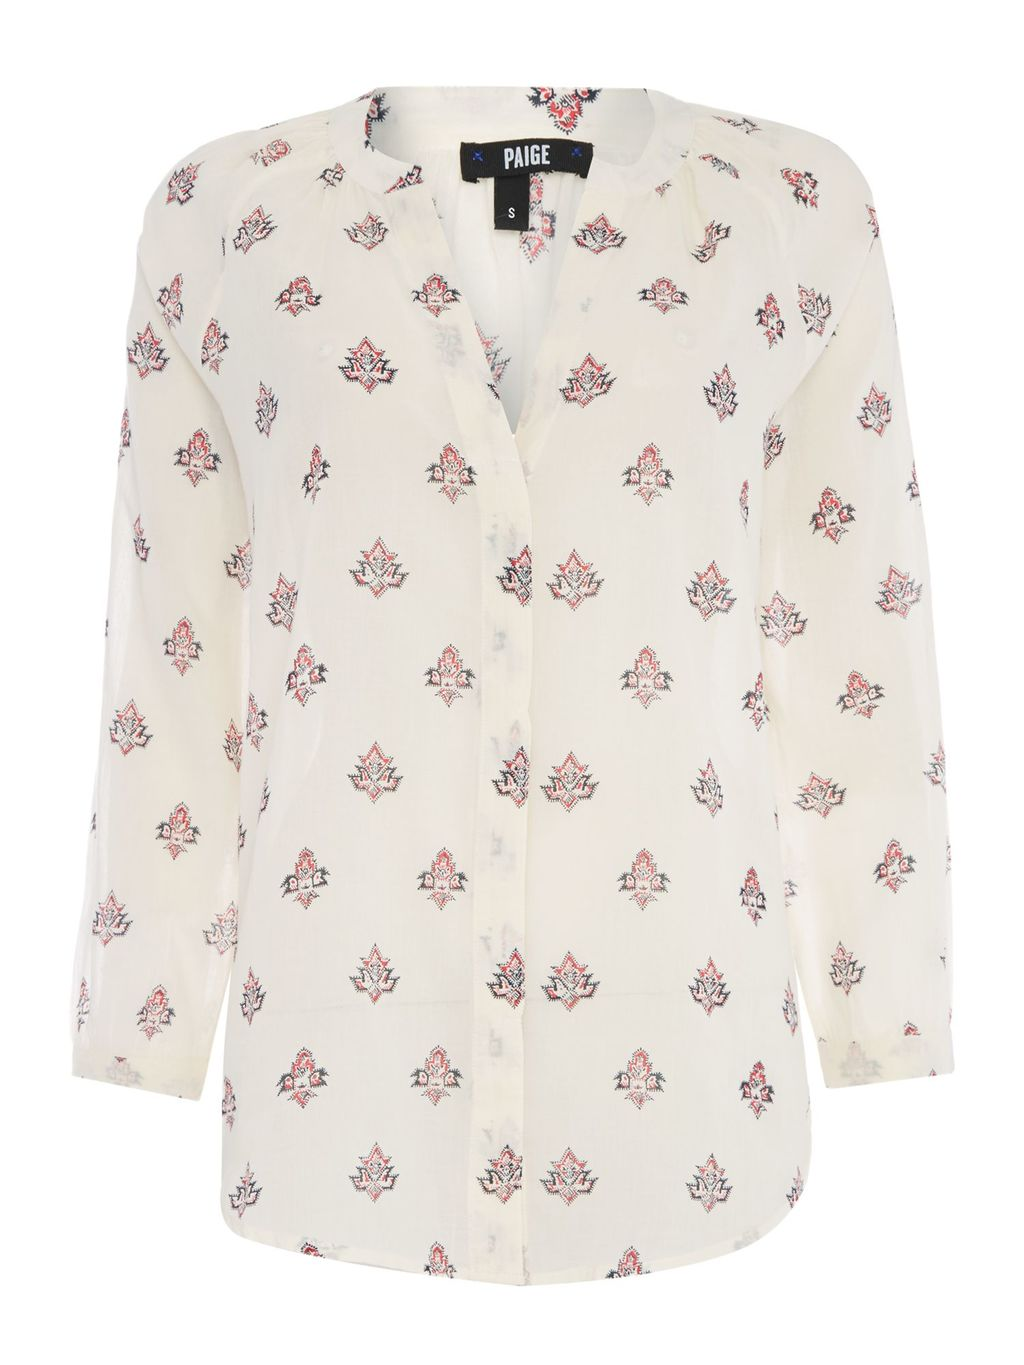 Sammy Long Sleeve Printed Blouse, Cream - neckline: v-neck; style: blouse; predominant colour: ivory/cream; secondary colour: blush; occasions: casual; length: standard; fibres: cotton - 100%; fit: body skimming; sleeve length: long sleeve; sleeve style: standard; texture group: cotton feel fabrics; pattern type: fabric; pattern: patterned/print; multicoloured: multicoloured; season: s/s 2016